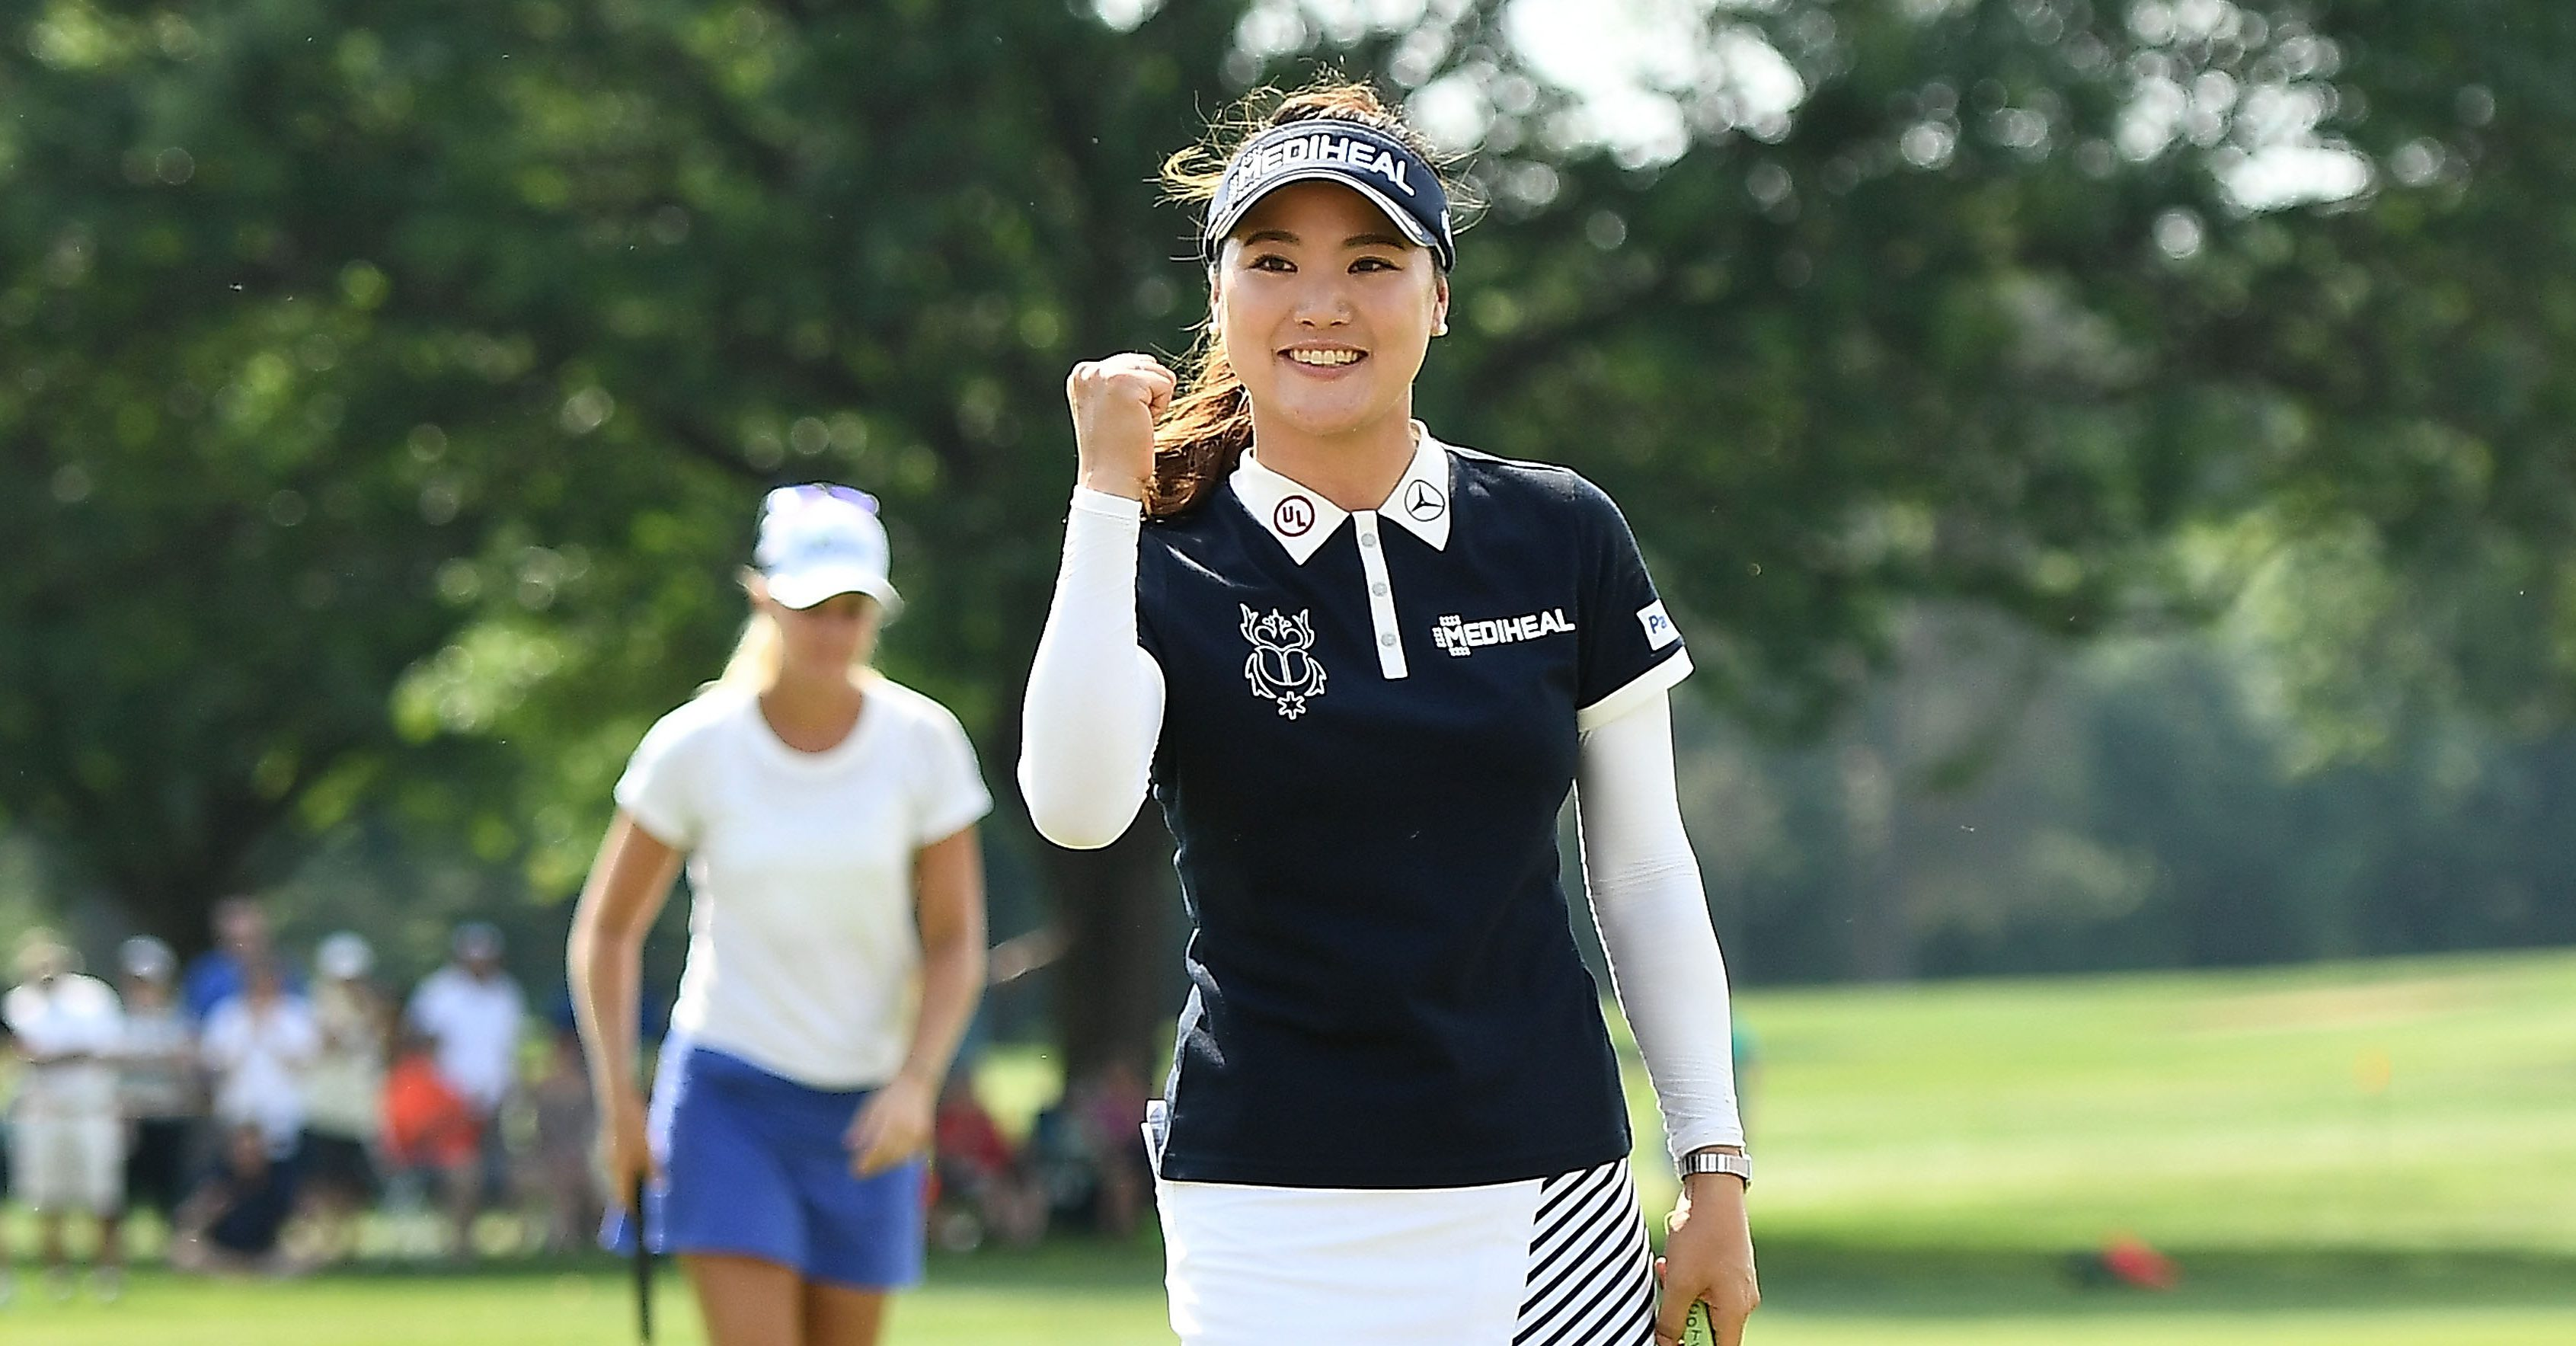 GRAND RAPIDS, MI - JUNE 17: So Yeon Ryu of South Korea reacts after winning the Meijer LPGA Classic for Simply Give at Blythefield Country Club on June 17, 2018 in Grand Rapids, Michigan. (Photo by Stacy Revere/Getty Images)